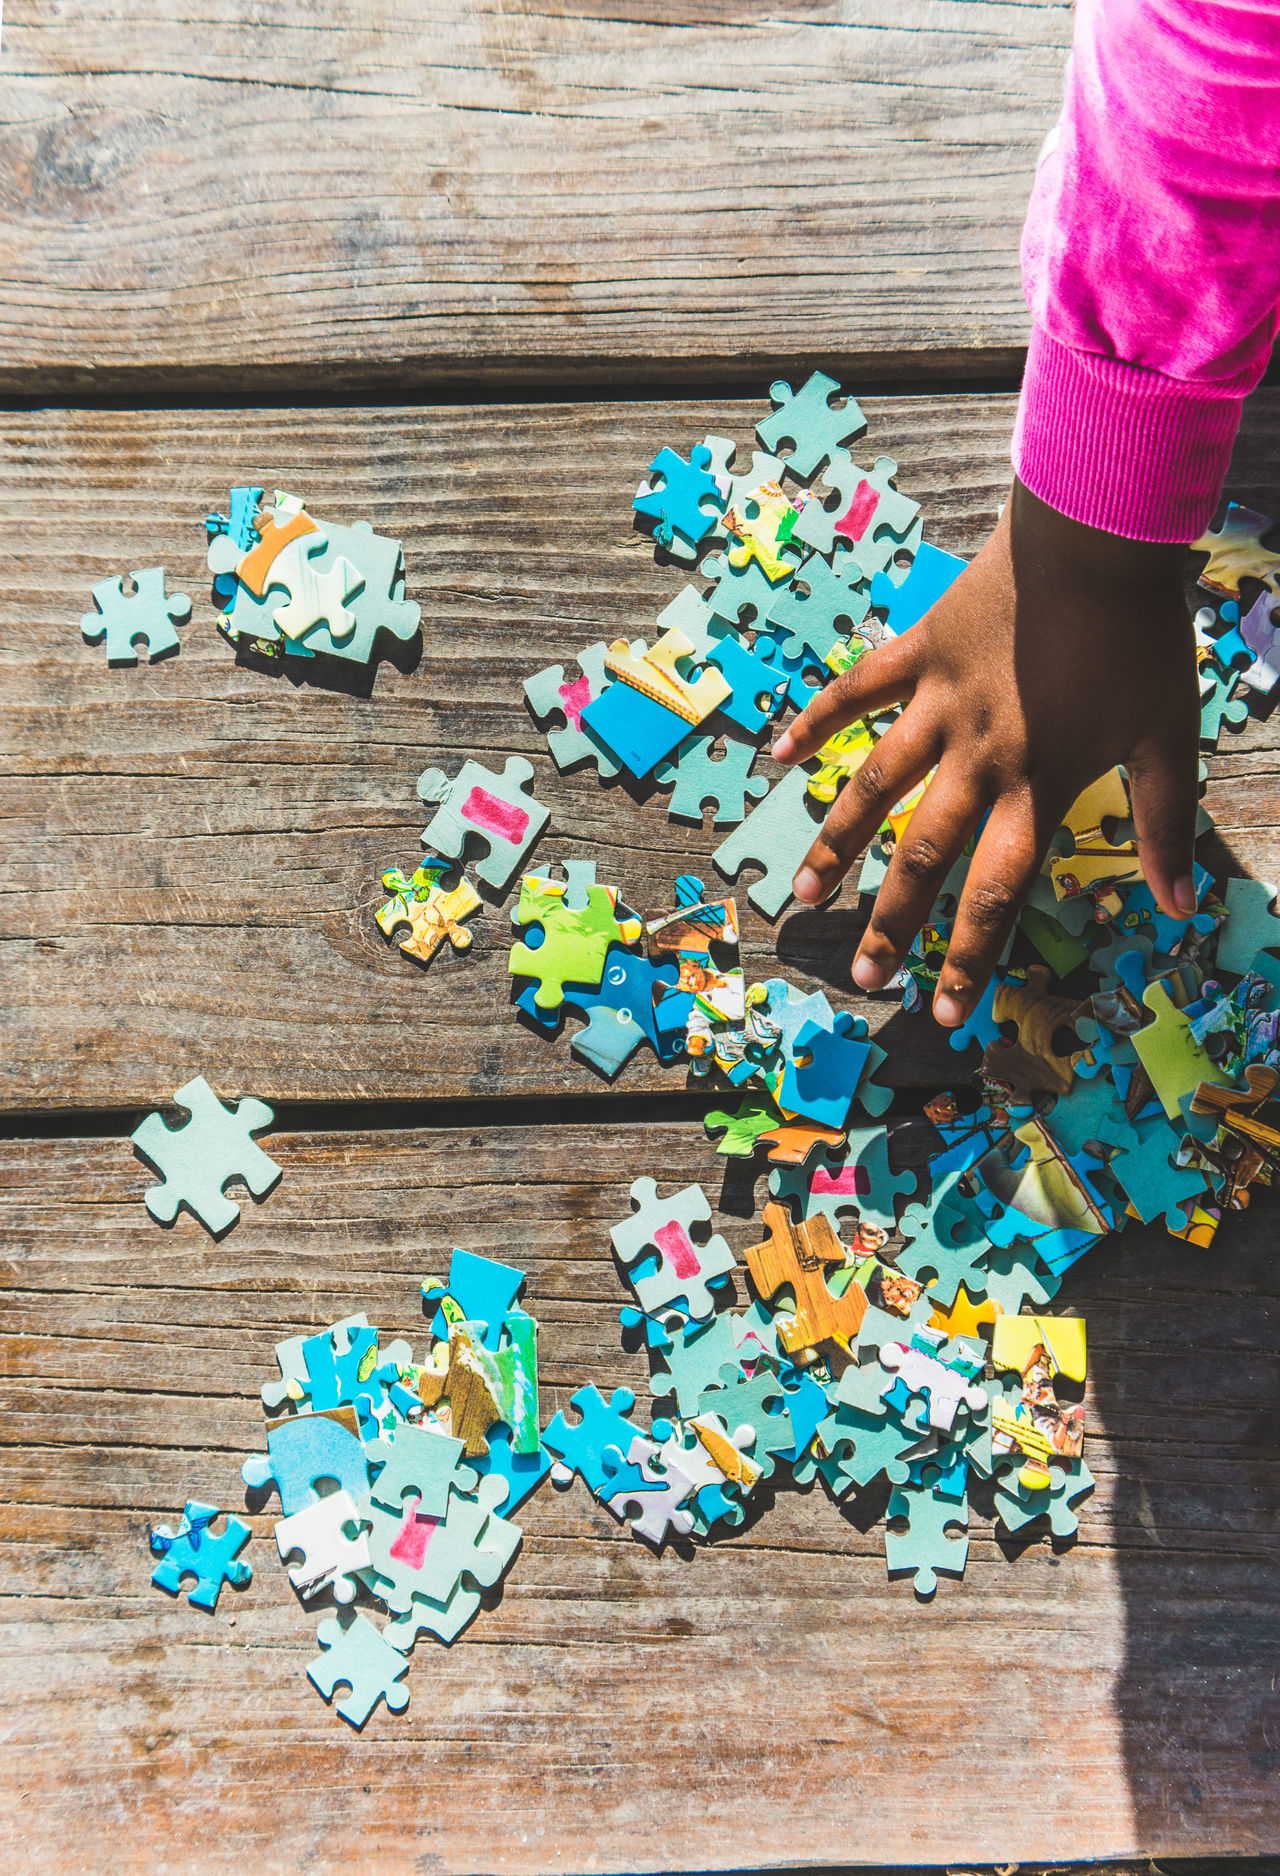 Beautiful stock photos of puzzle,  Childhood,  Collection,  Colorful,  Creativity